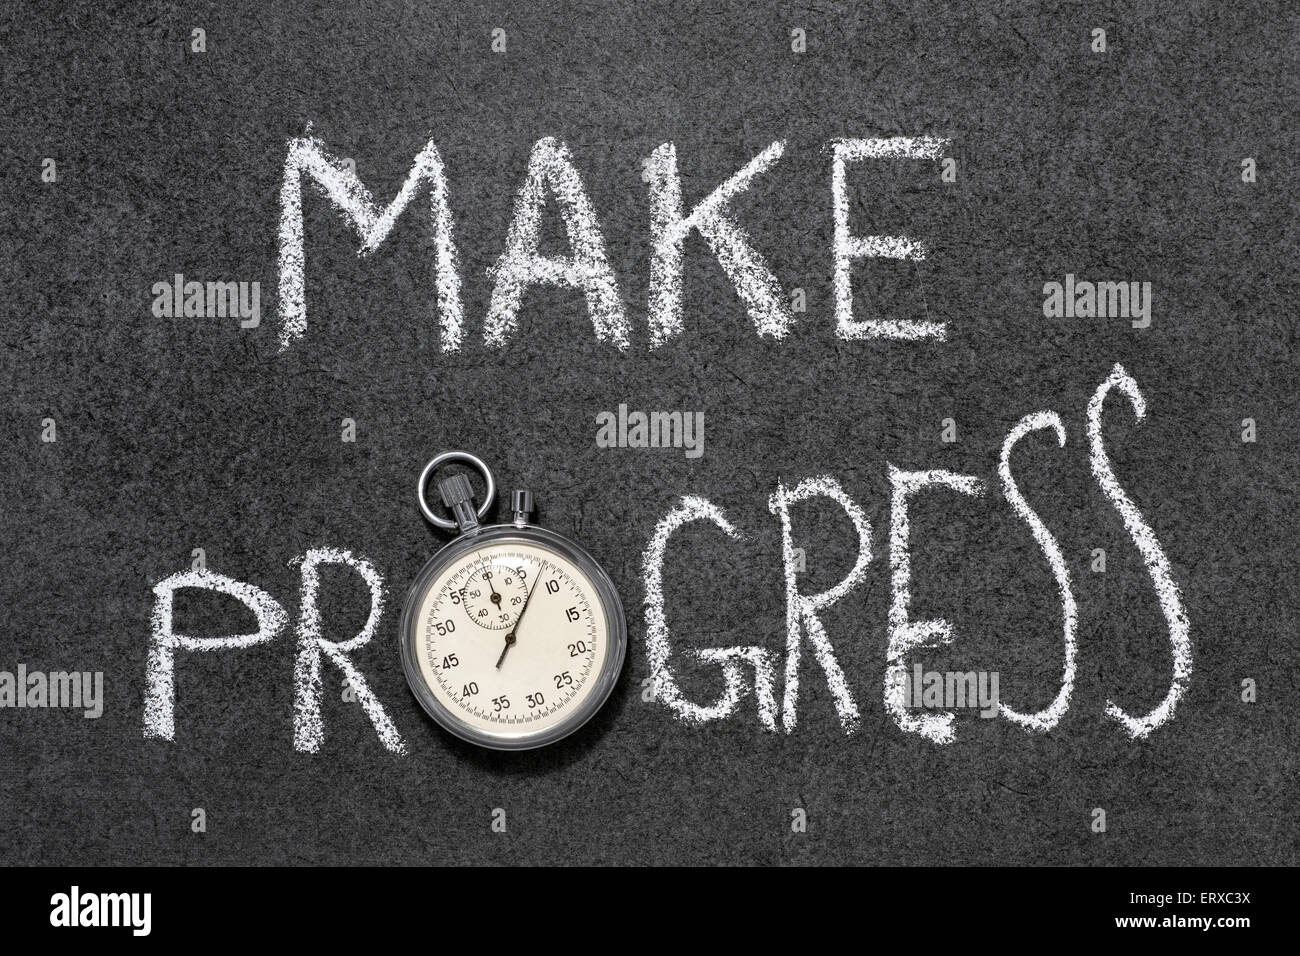 make progress phrase handwritten on chalkboard with vintage precise stopwatch used instead of O - Stock Image